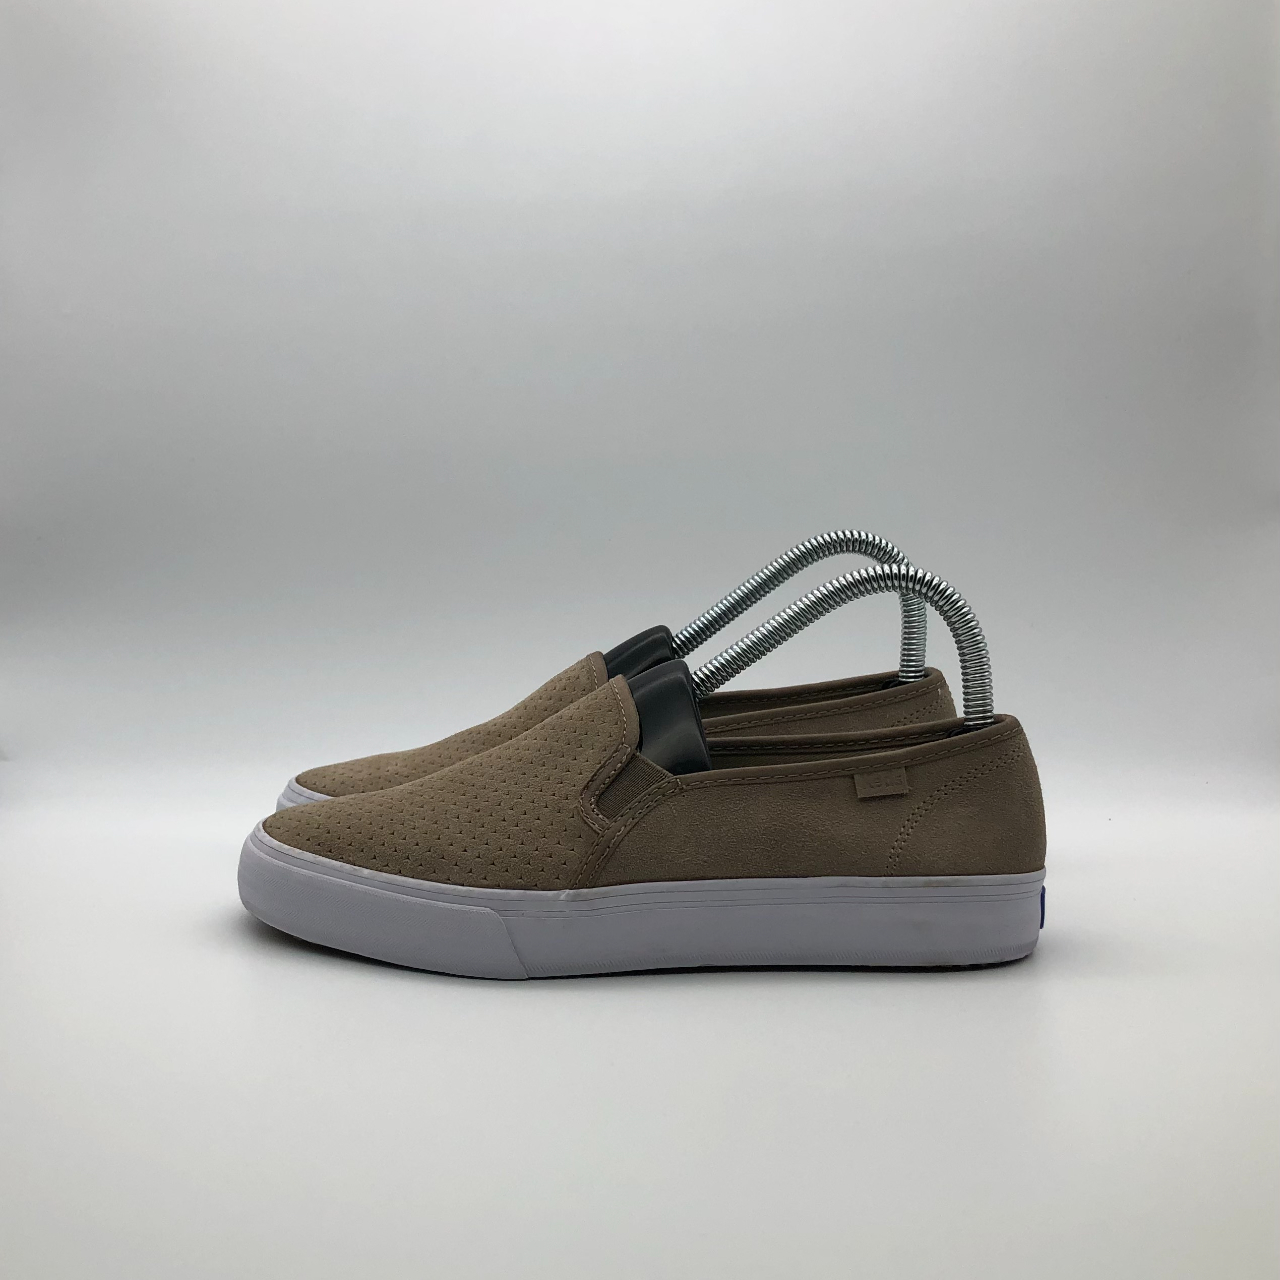 Product Image 1 - Keds Slip On Sneakers  Item is